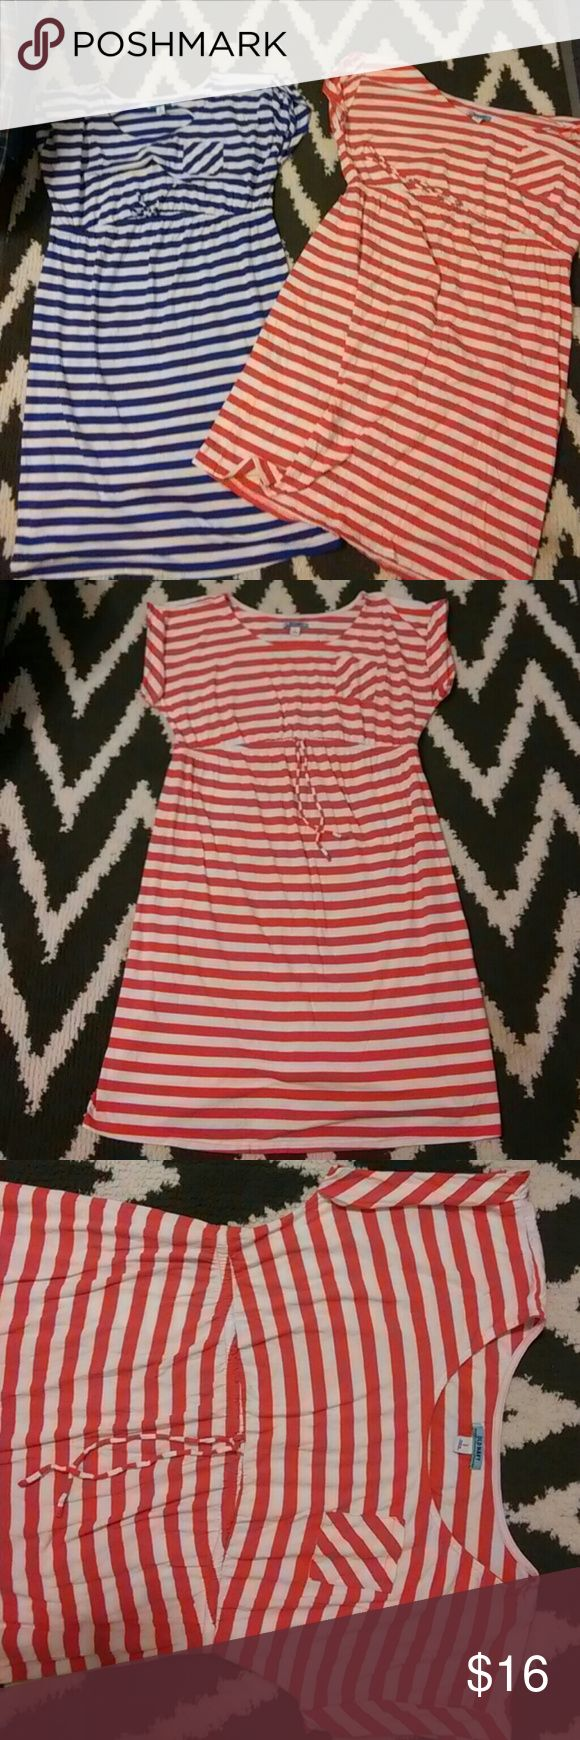 🚫SOLD🚫SOLD Maternity dresses 2 Old Navy maternity dresses, one blue and white stripes other red-orange and white stripes selling together 1 price perfect condition no rips or stains,both size Large Old Navy Dresses